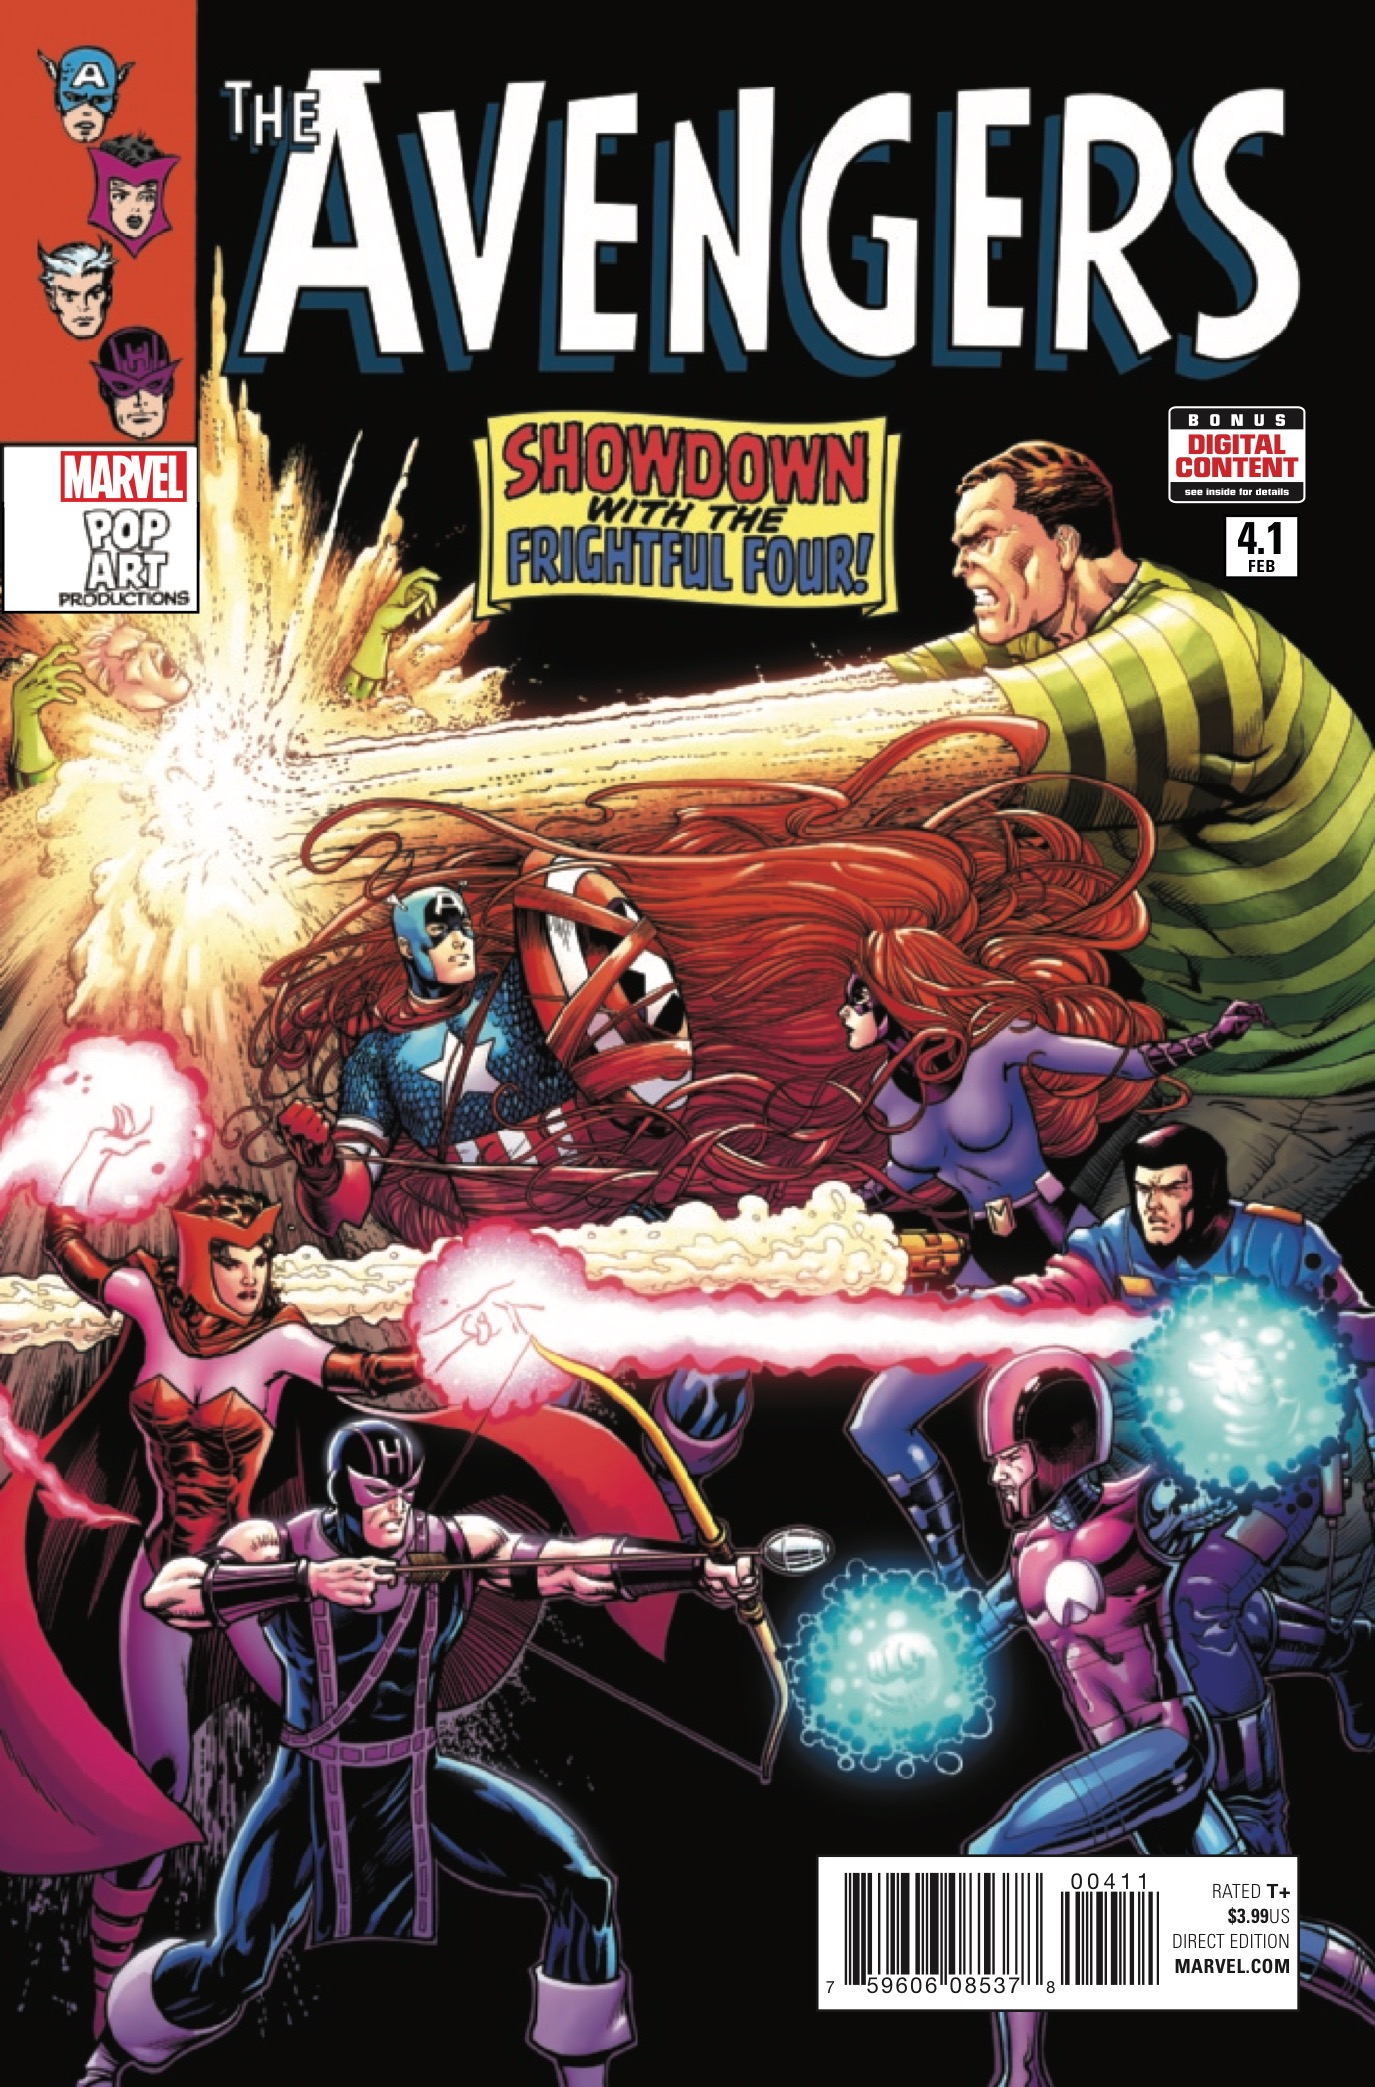 """""""Mighty,"""" """"Uncanny"""" and """"All-New, All-Different"""" are adjectives you're likely to see paired with """"Avengers."""" """"Fun"""" - not so much. But in reality, that's exactly what Avengers #4.1 is - """"Fun Avengers!"""""""